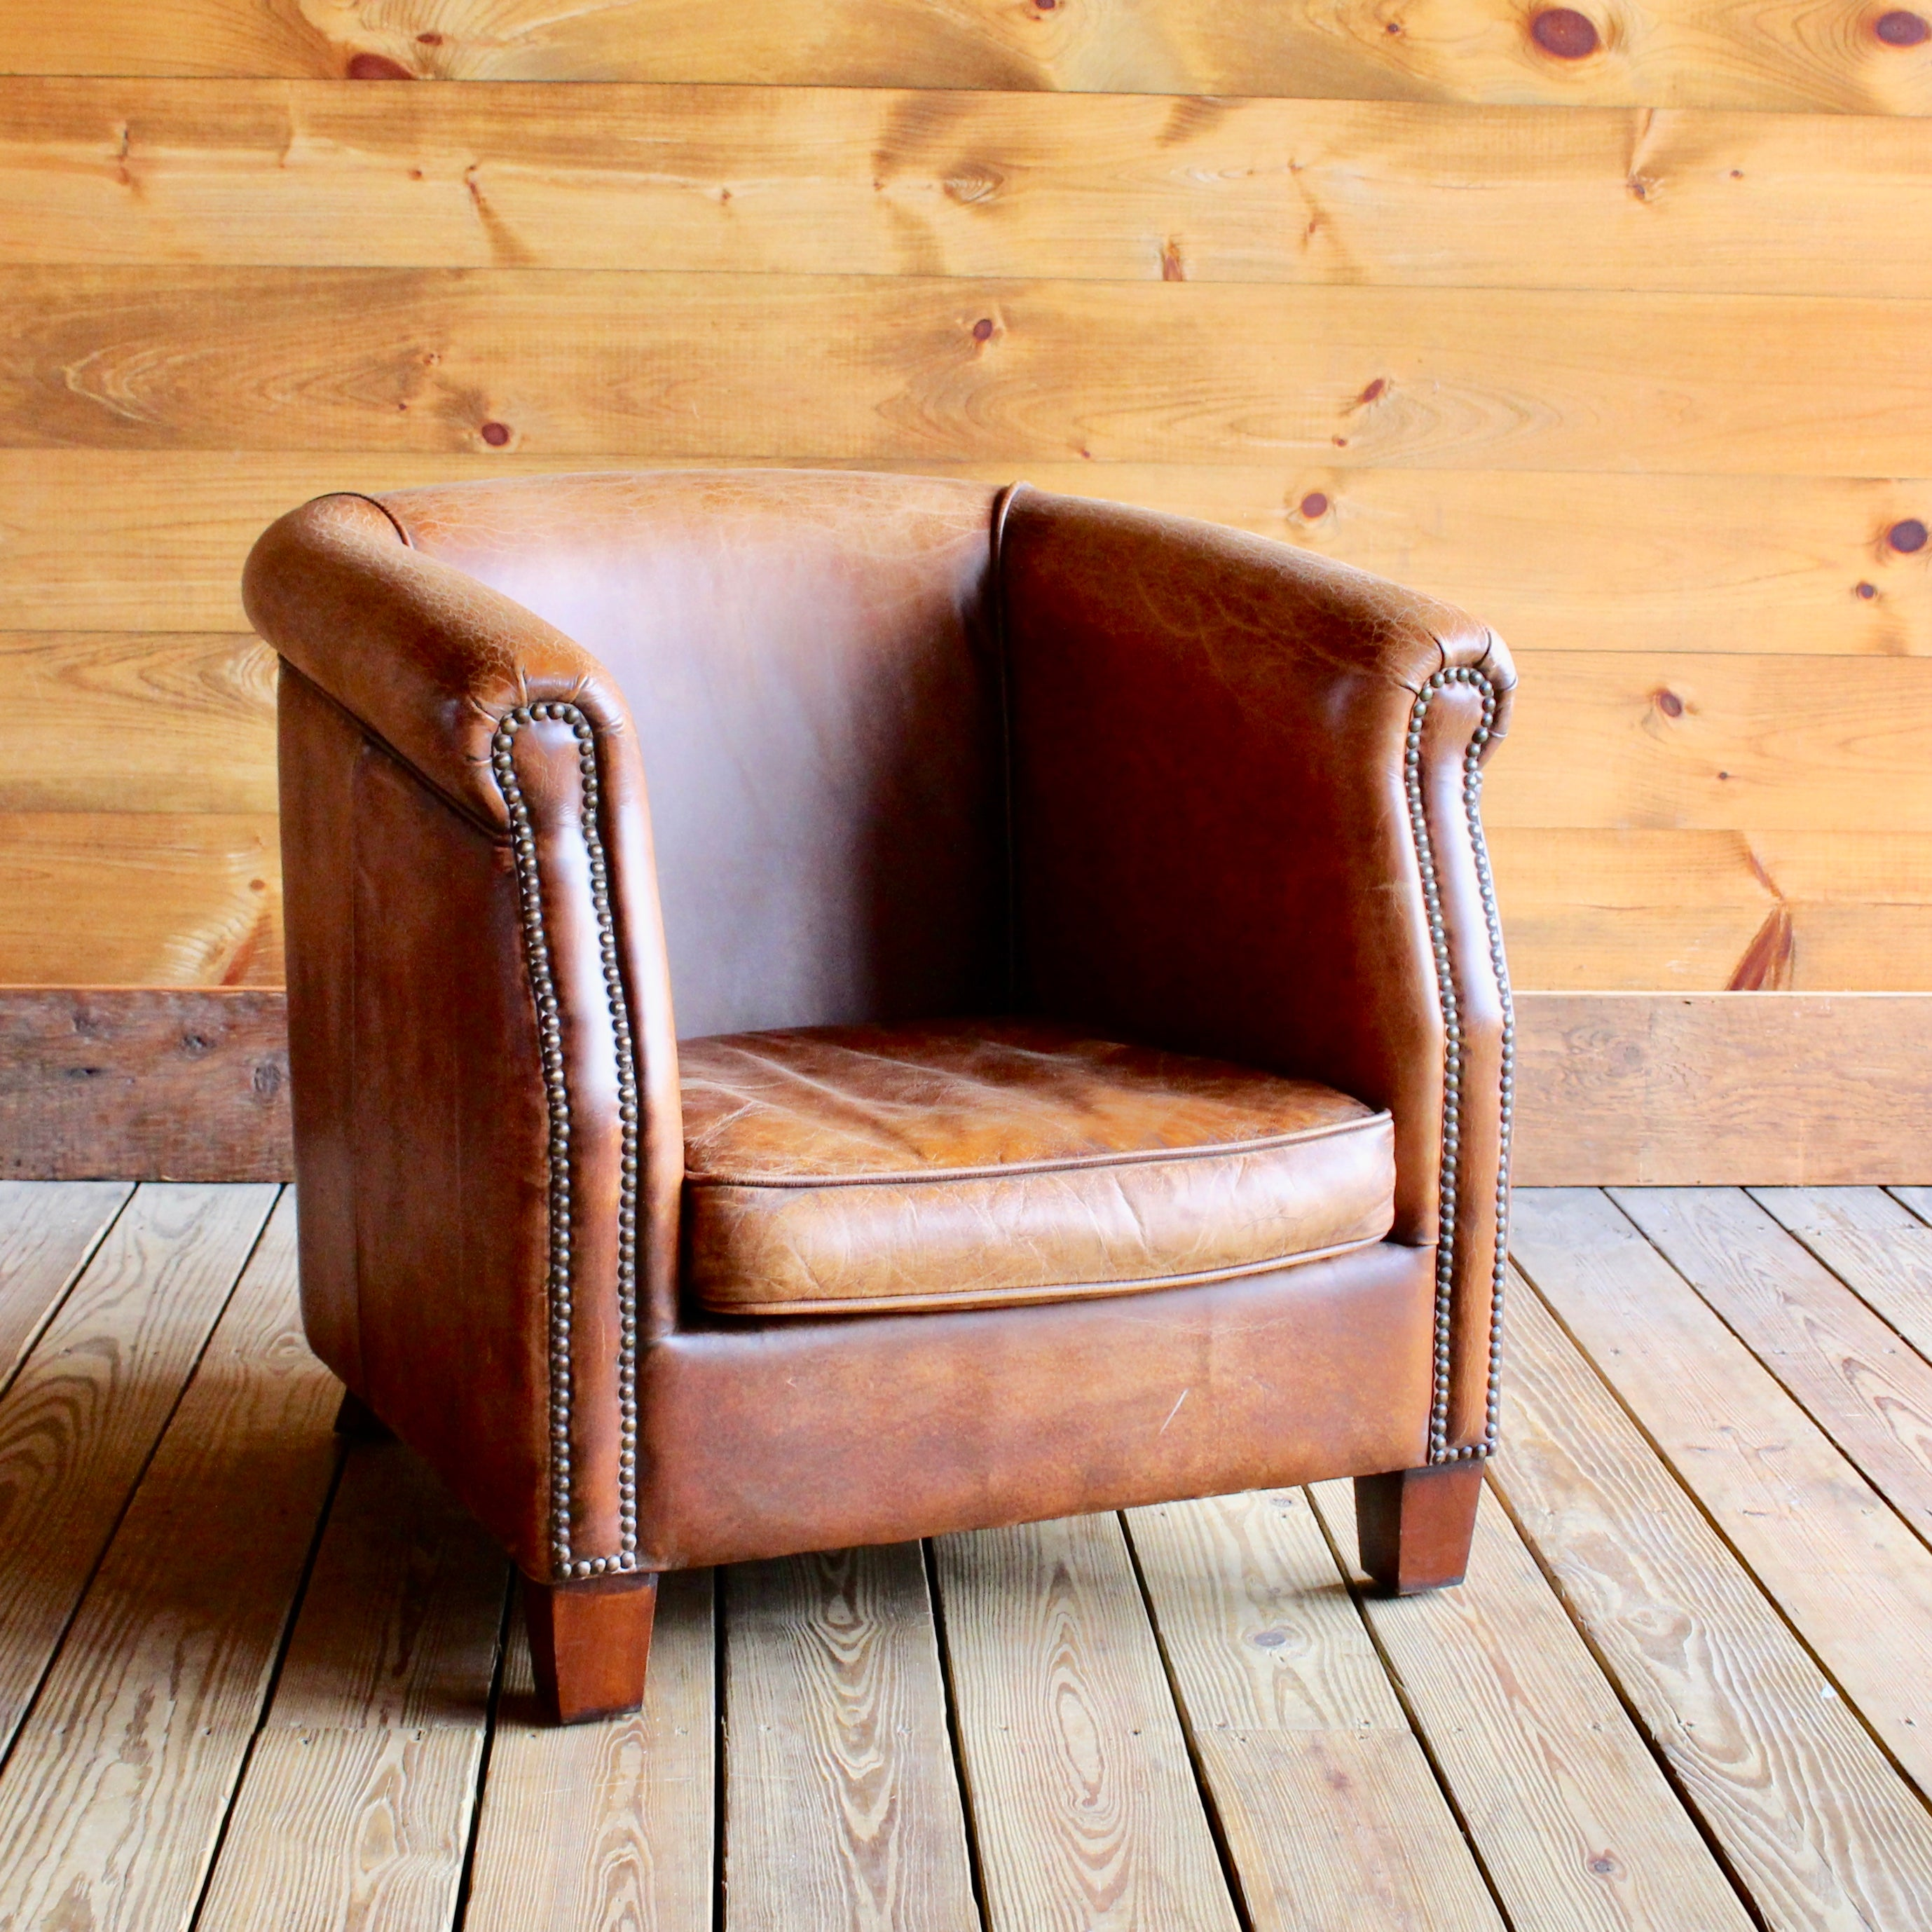 Charming Distressed Buffalo Leather Barrel Chair With Nailhead Trim